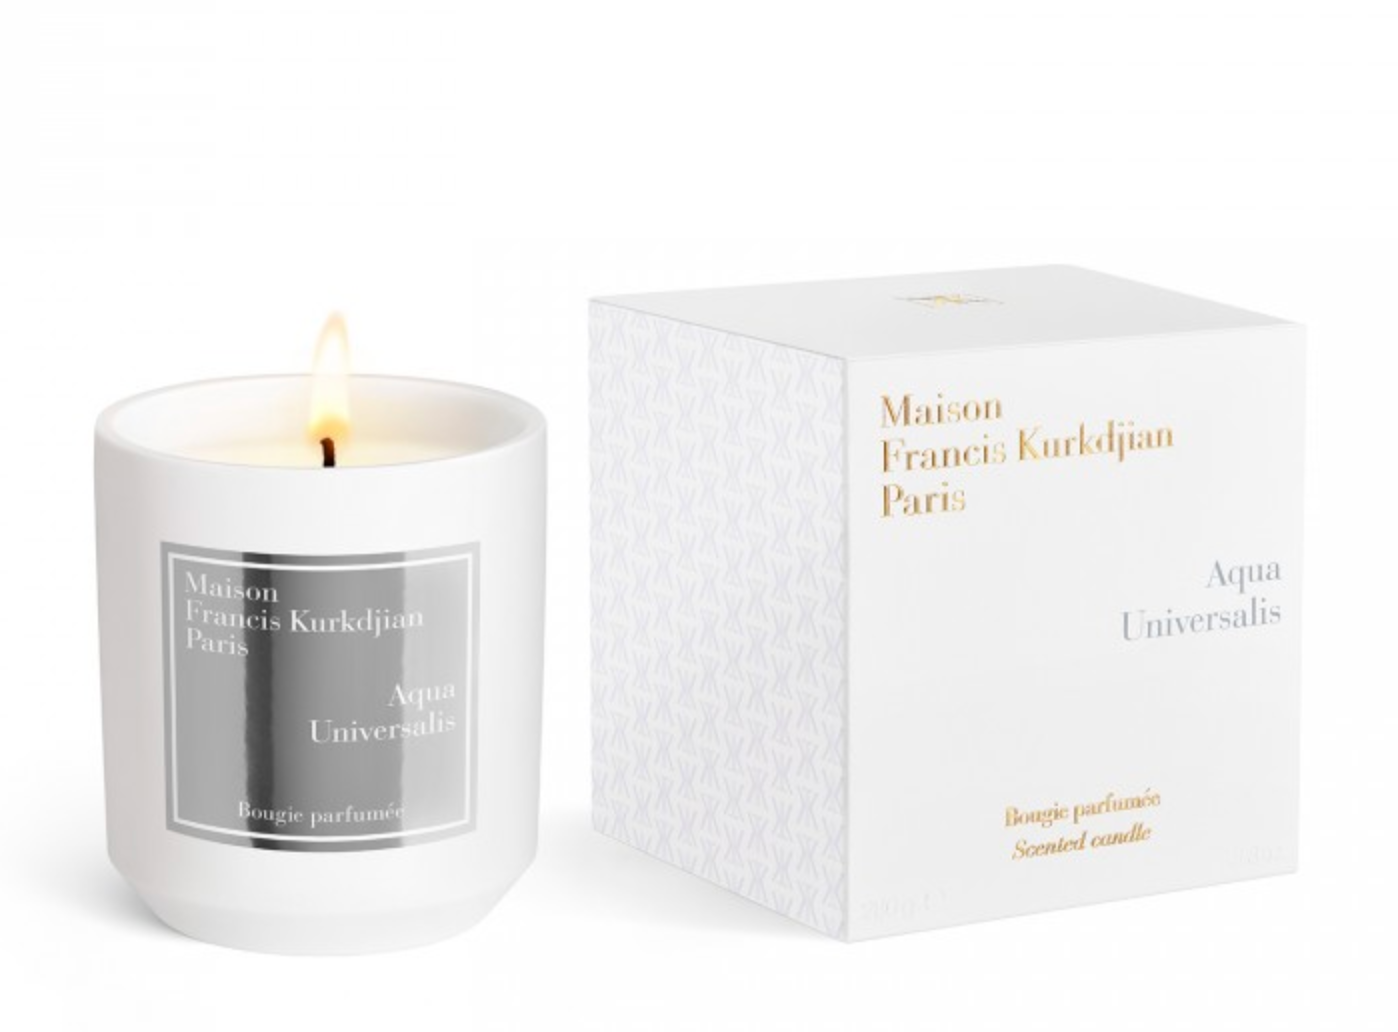 Kurkdjian Aqua Universalis Candle - Online Exclusive for Limited Time Only